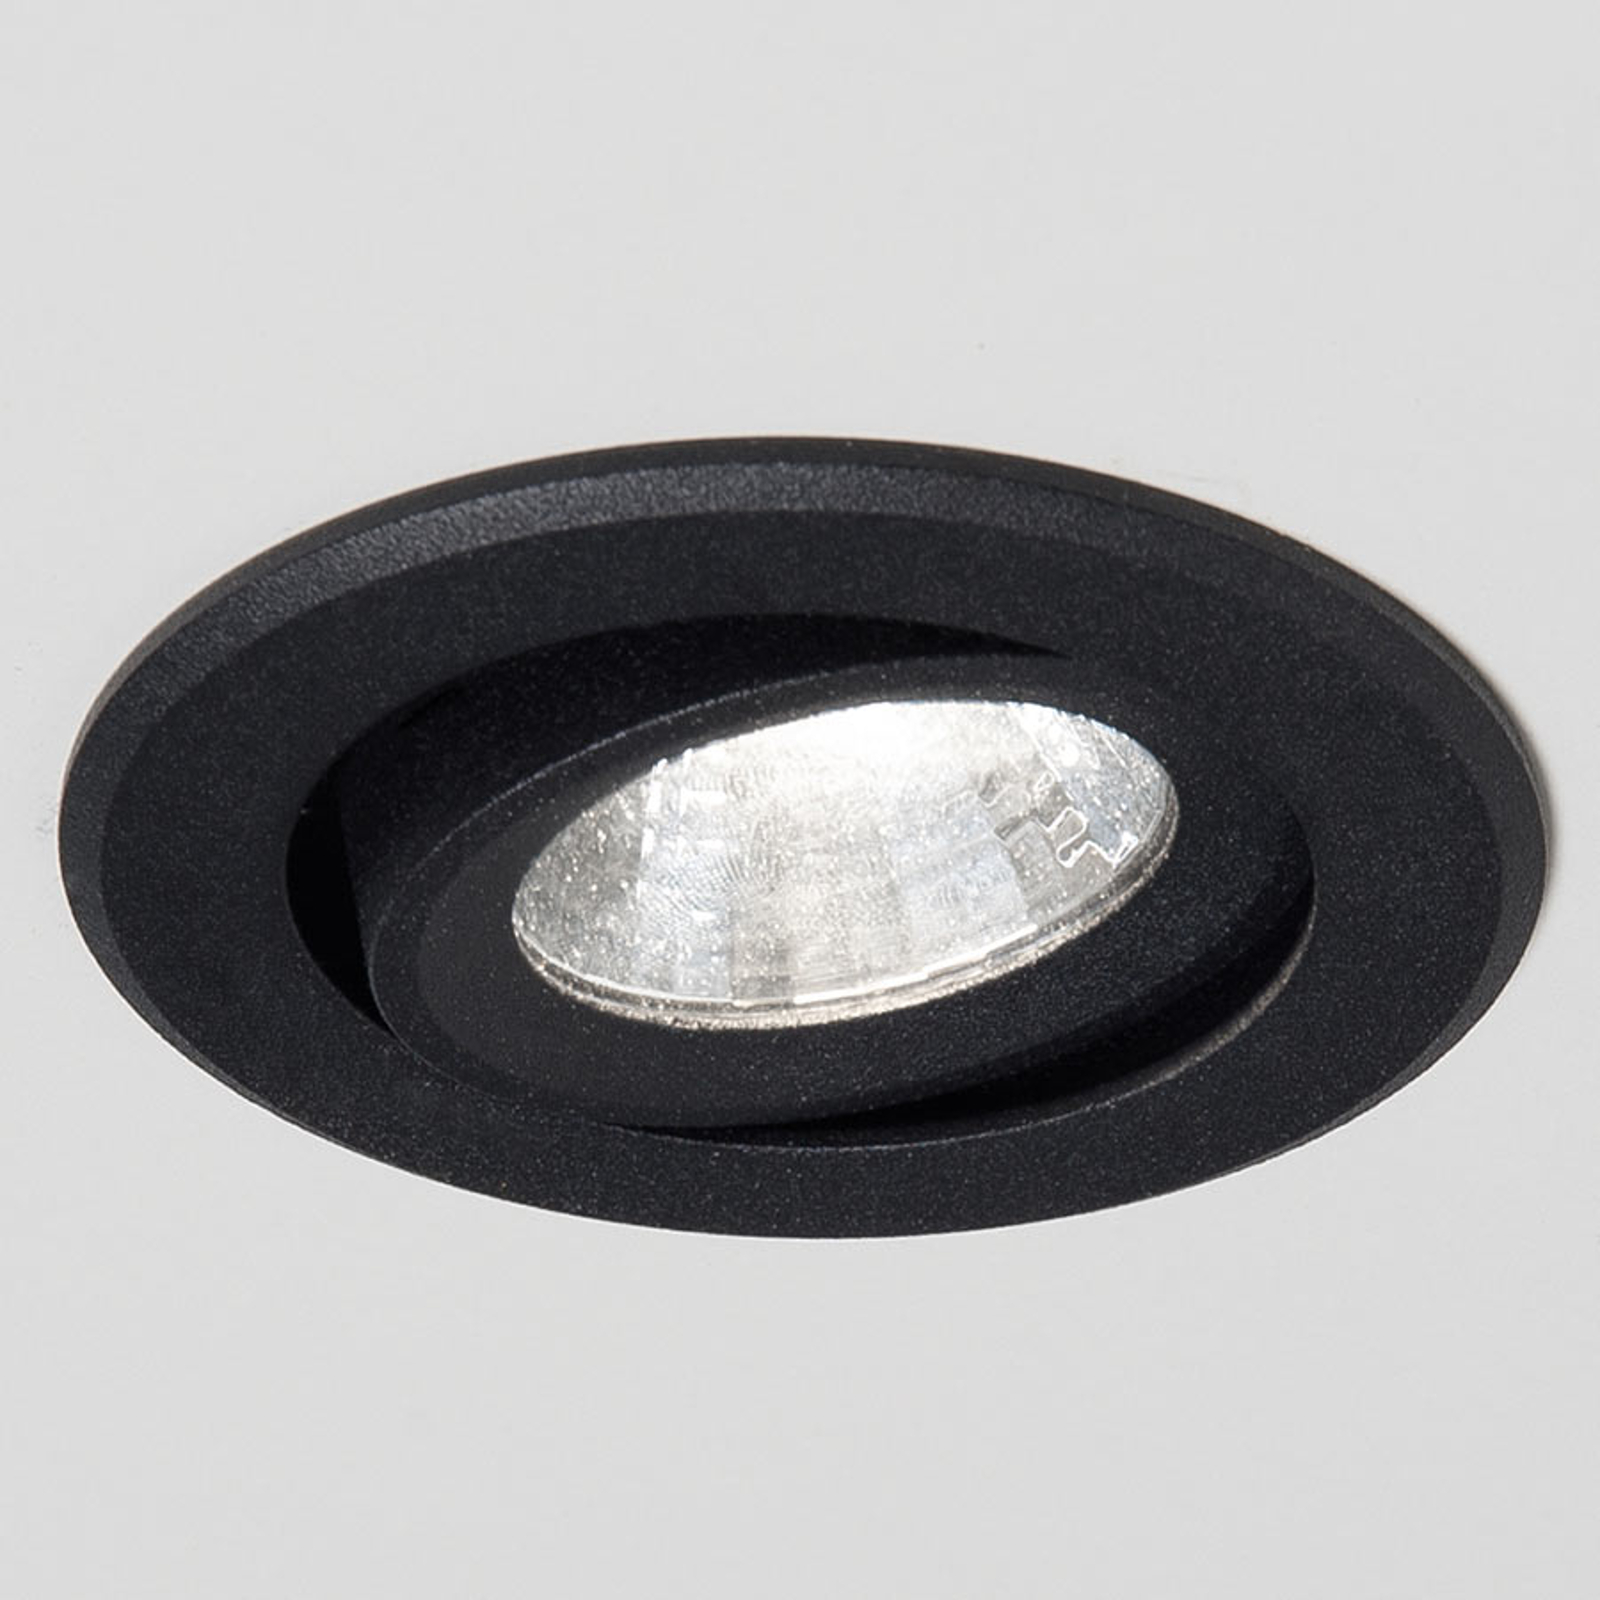 Acquista Agon Round spot LED incasso 3.000K 40° nero